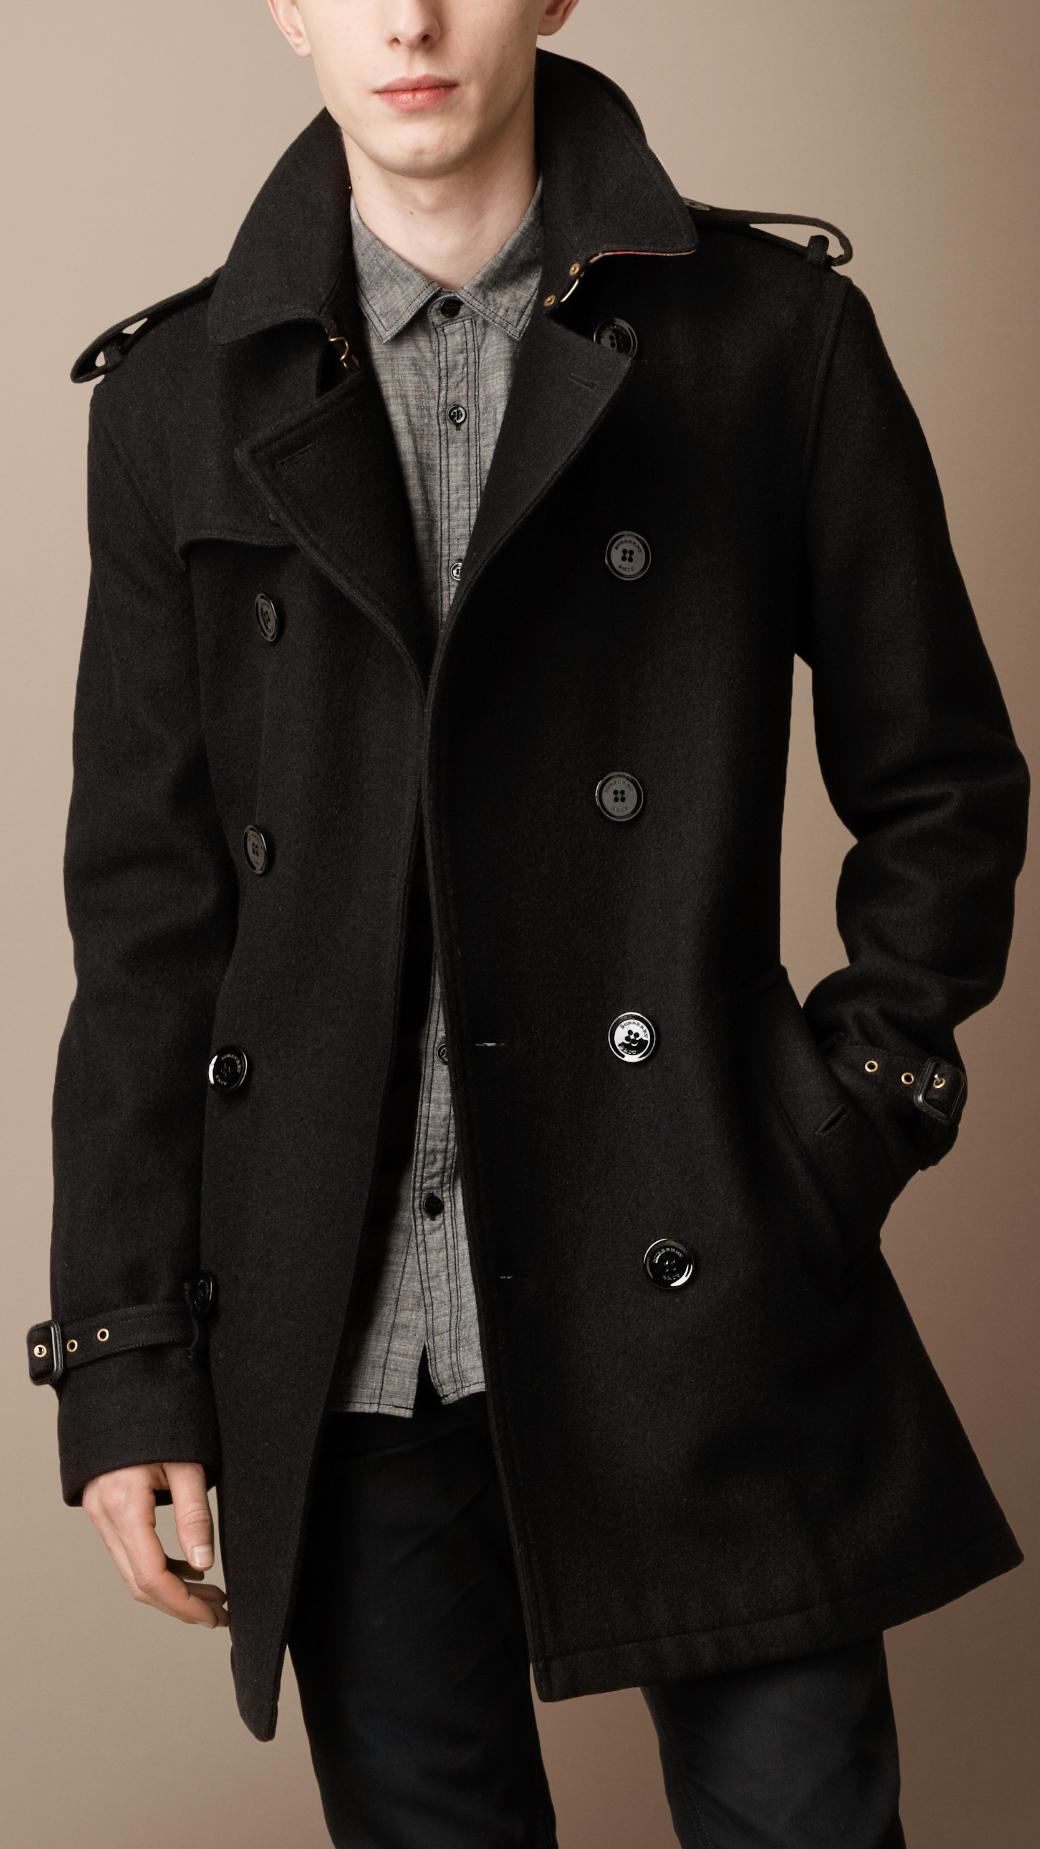 In our selection of men's coats you'll find everything from the pea coat to the trench coat, so no matter your style or taste we've got you covered.